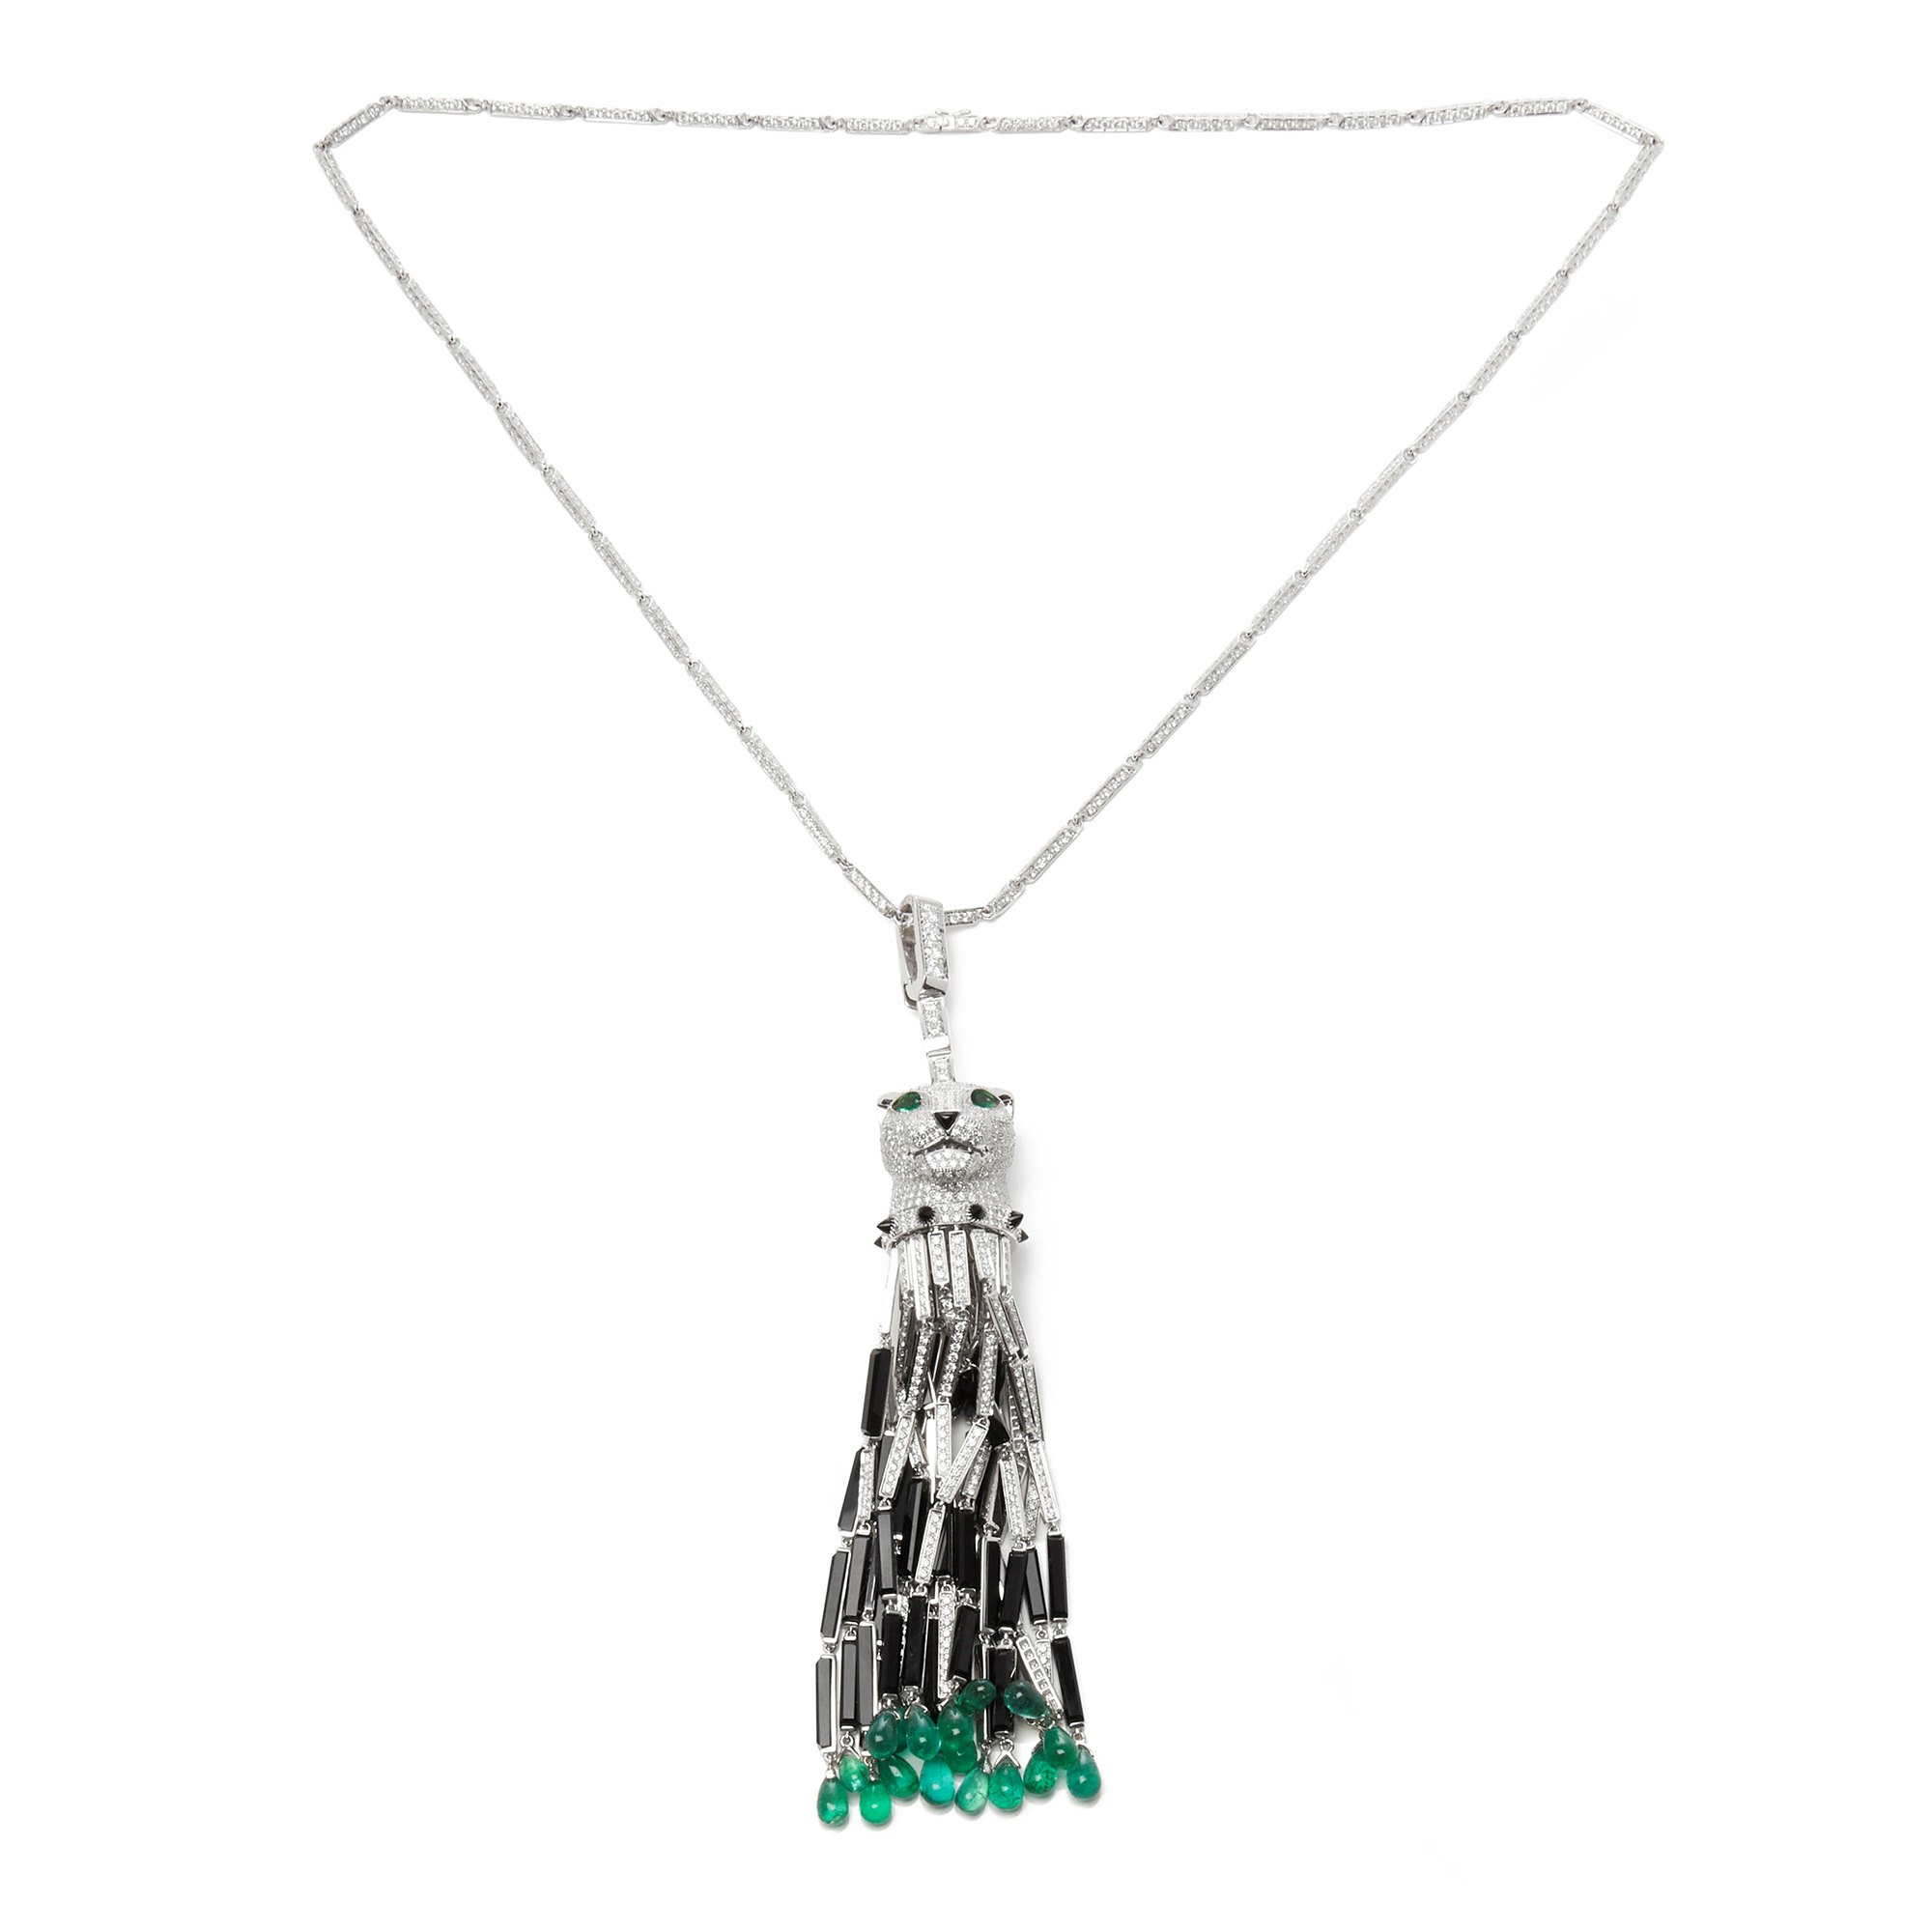 Cartier 18k White Gold Diamond, Emerald & Onyx Panthère Pendant Necklace